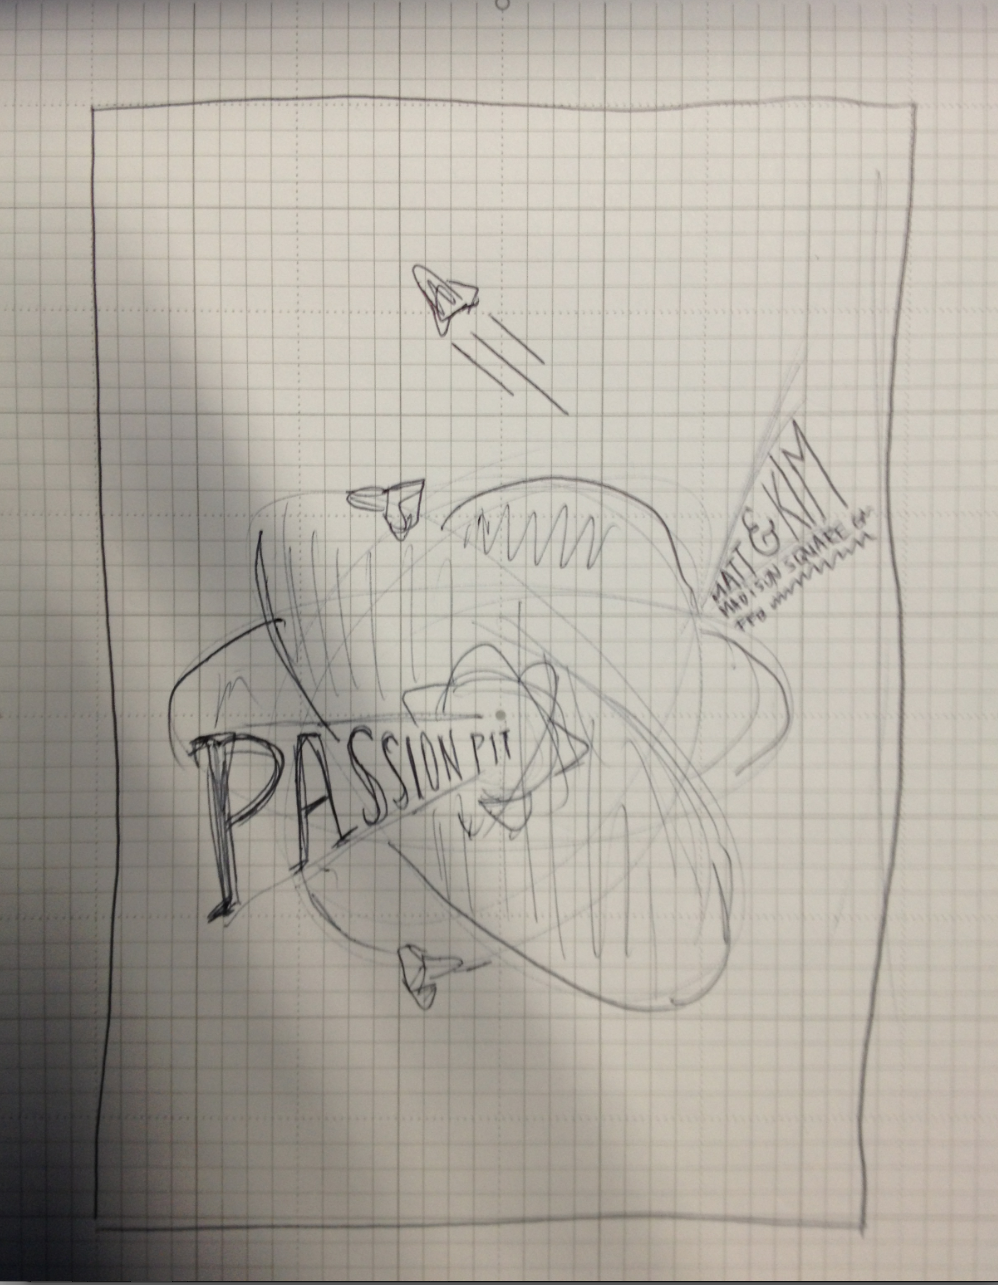 PASSION PIT - image 3 - student project